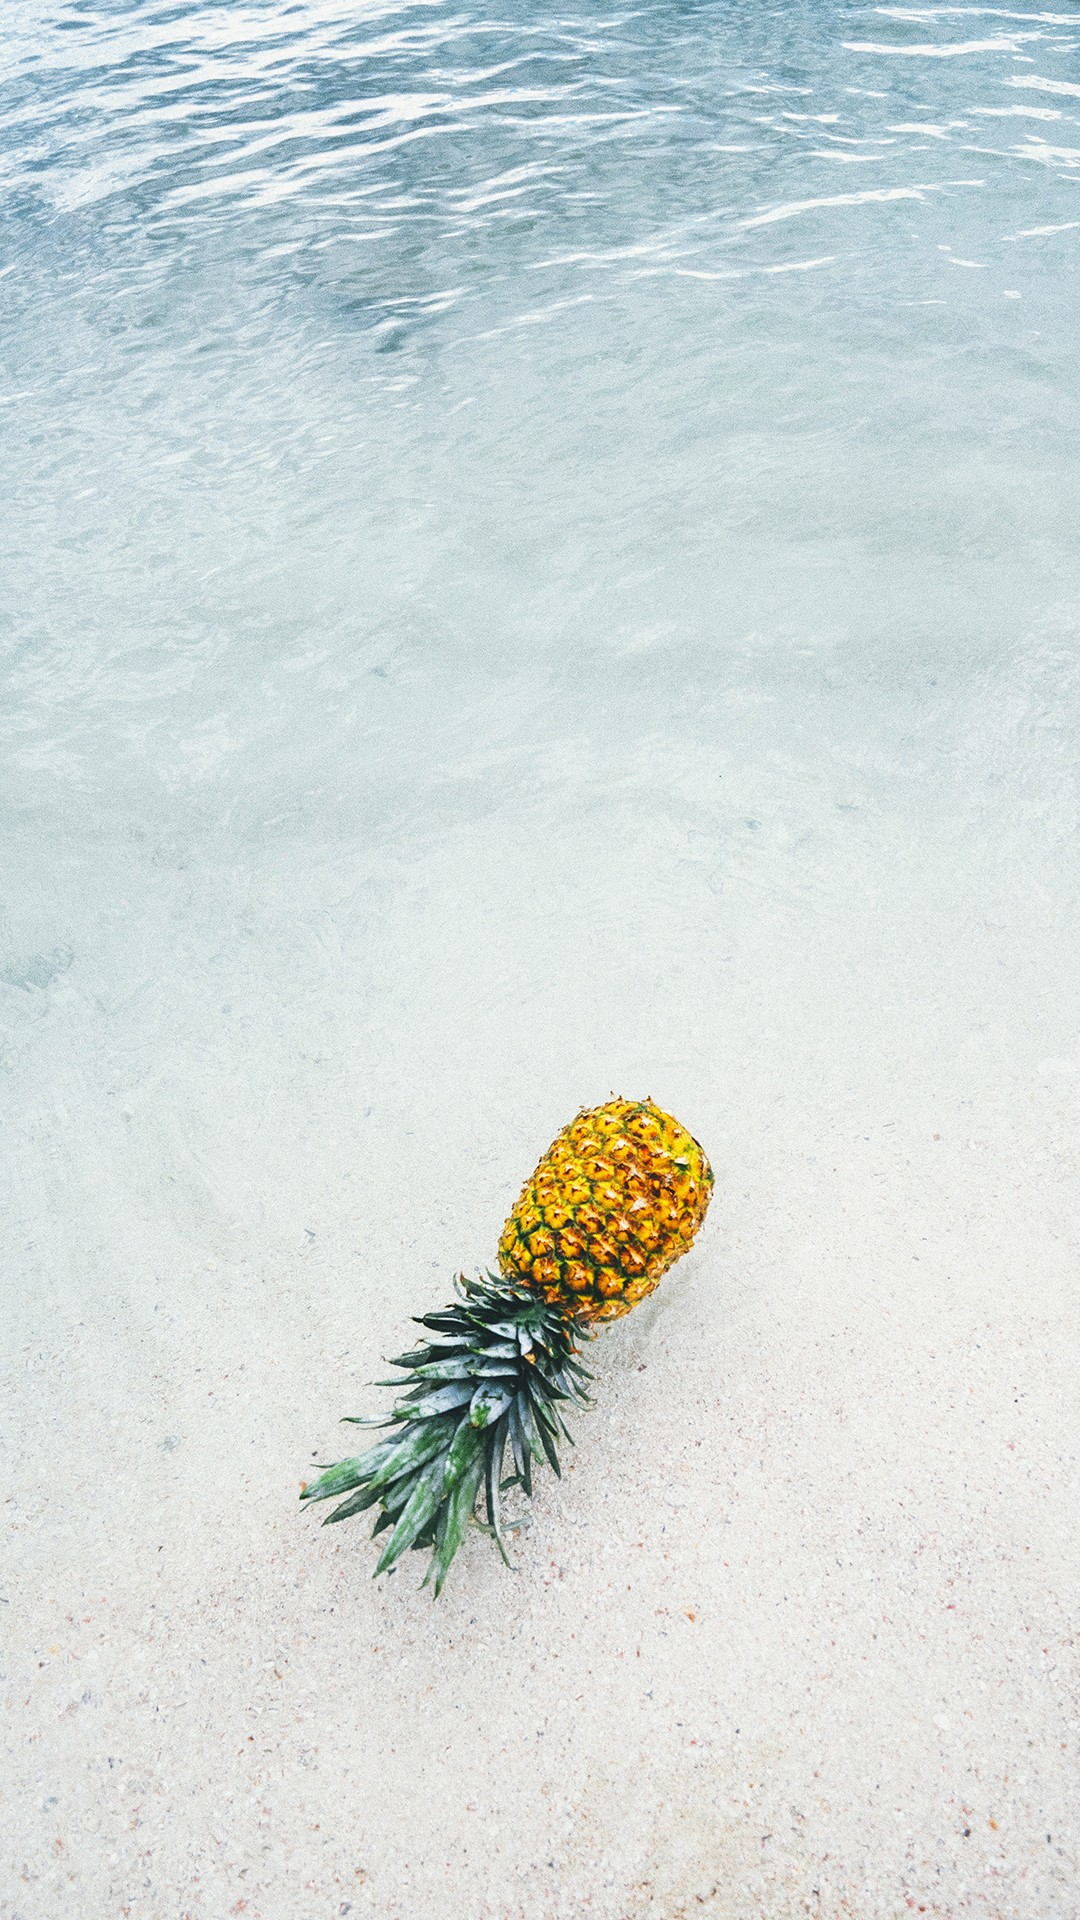 Pineapple Background Download Free Stunning Hd HD Wallpapers Download Free Images Wallpaper [1000image.com]